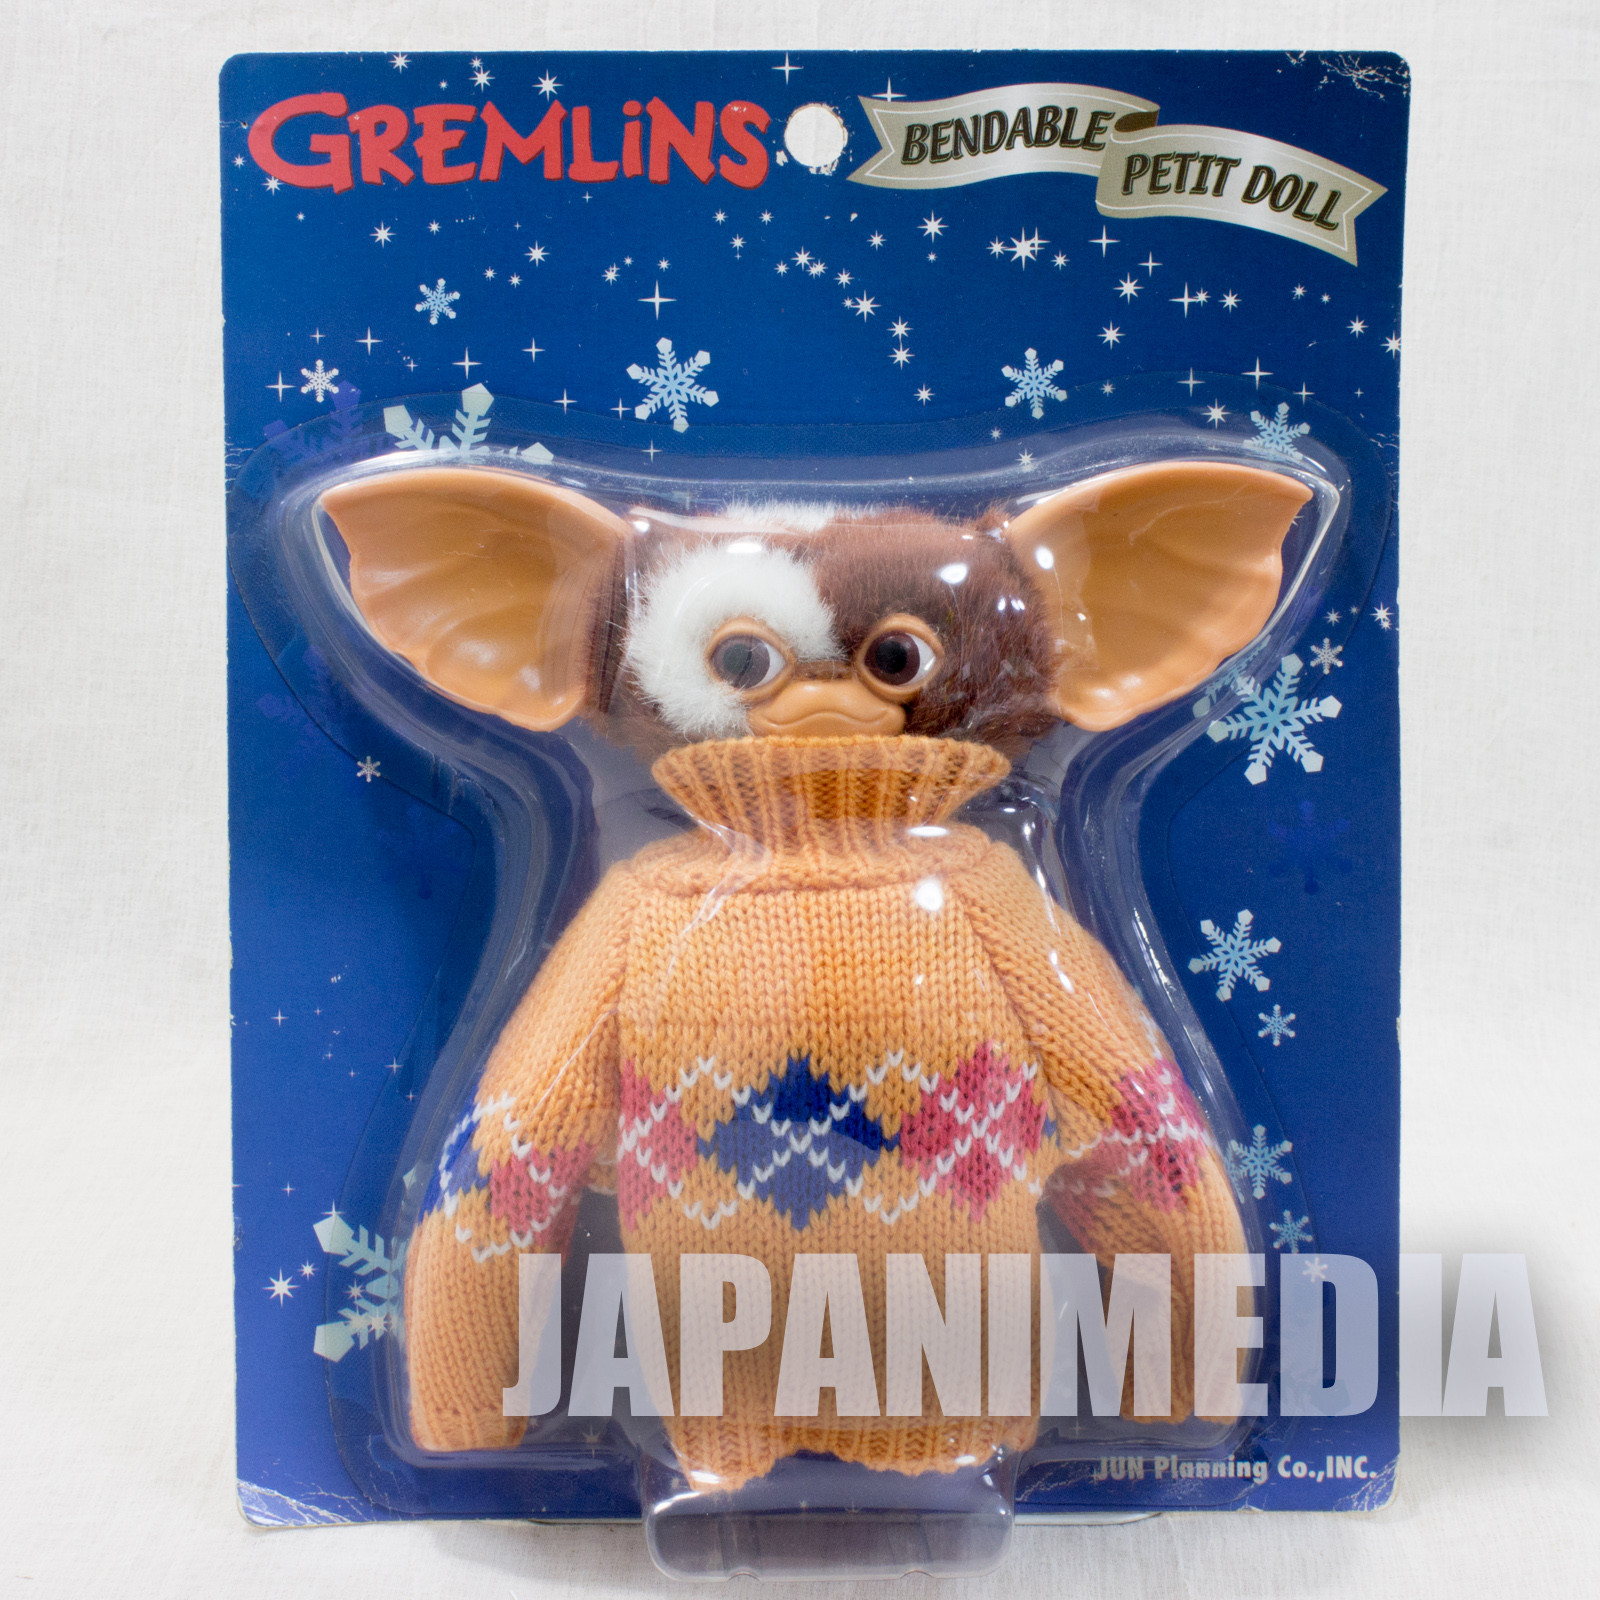 RARE! Gremlins 2 Gizmo Orange Sweater Bendable Petit Doll Figure Jun Planning